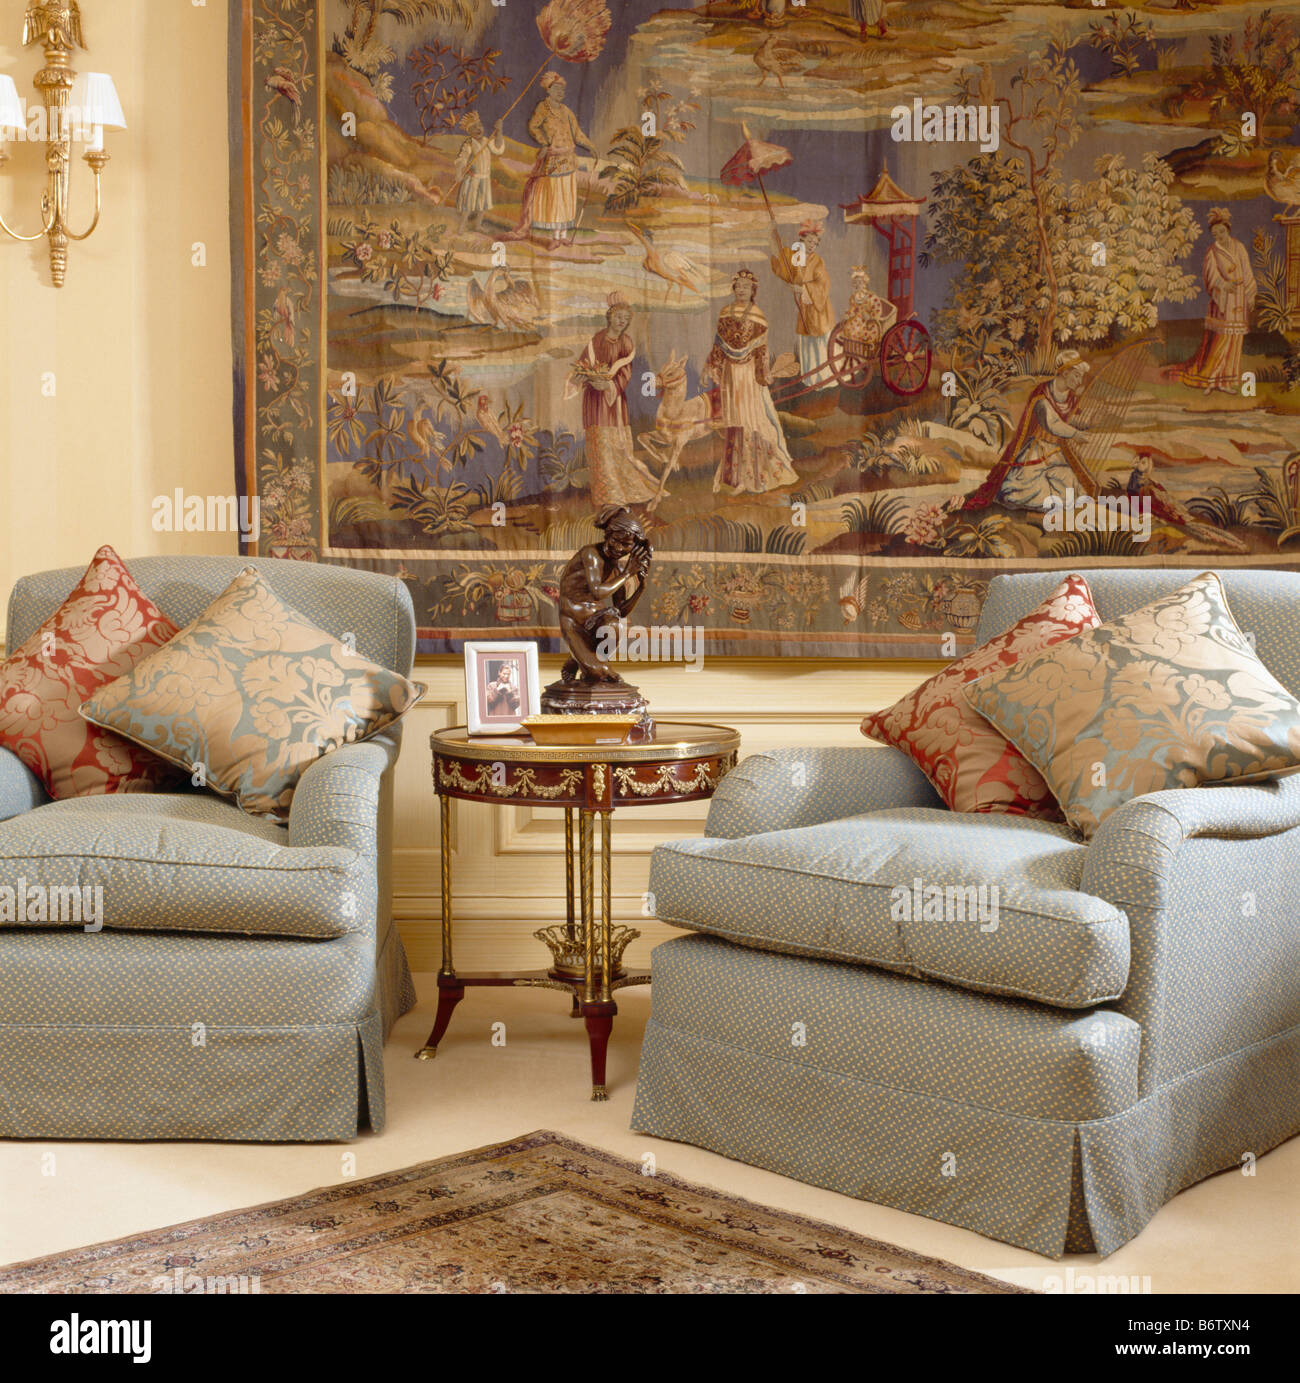 Patterned Silk Cushions On Comfy Grey Armchairs In Front Of Large Tapestry  On Living Room Wall